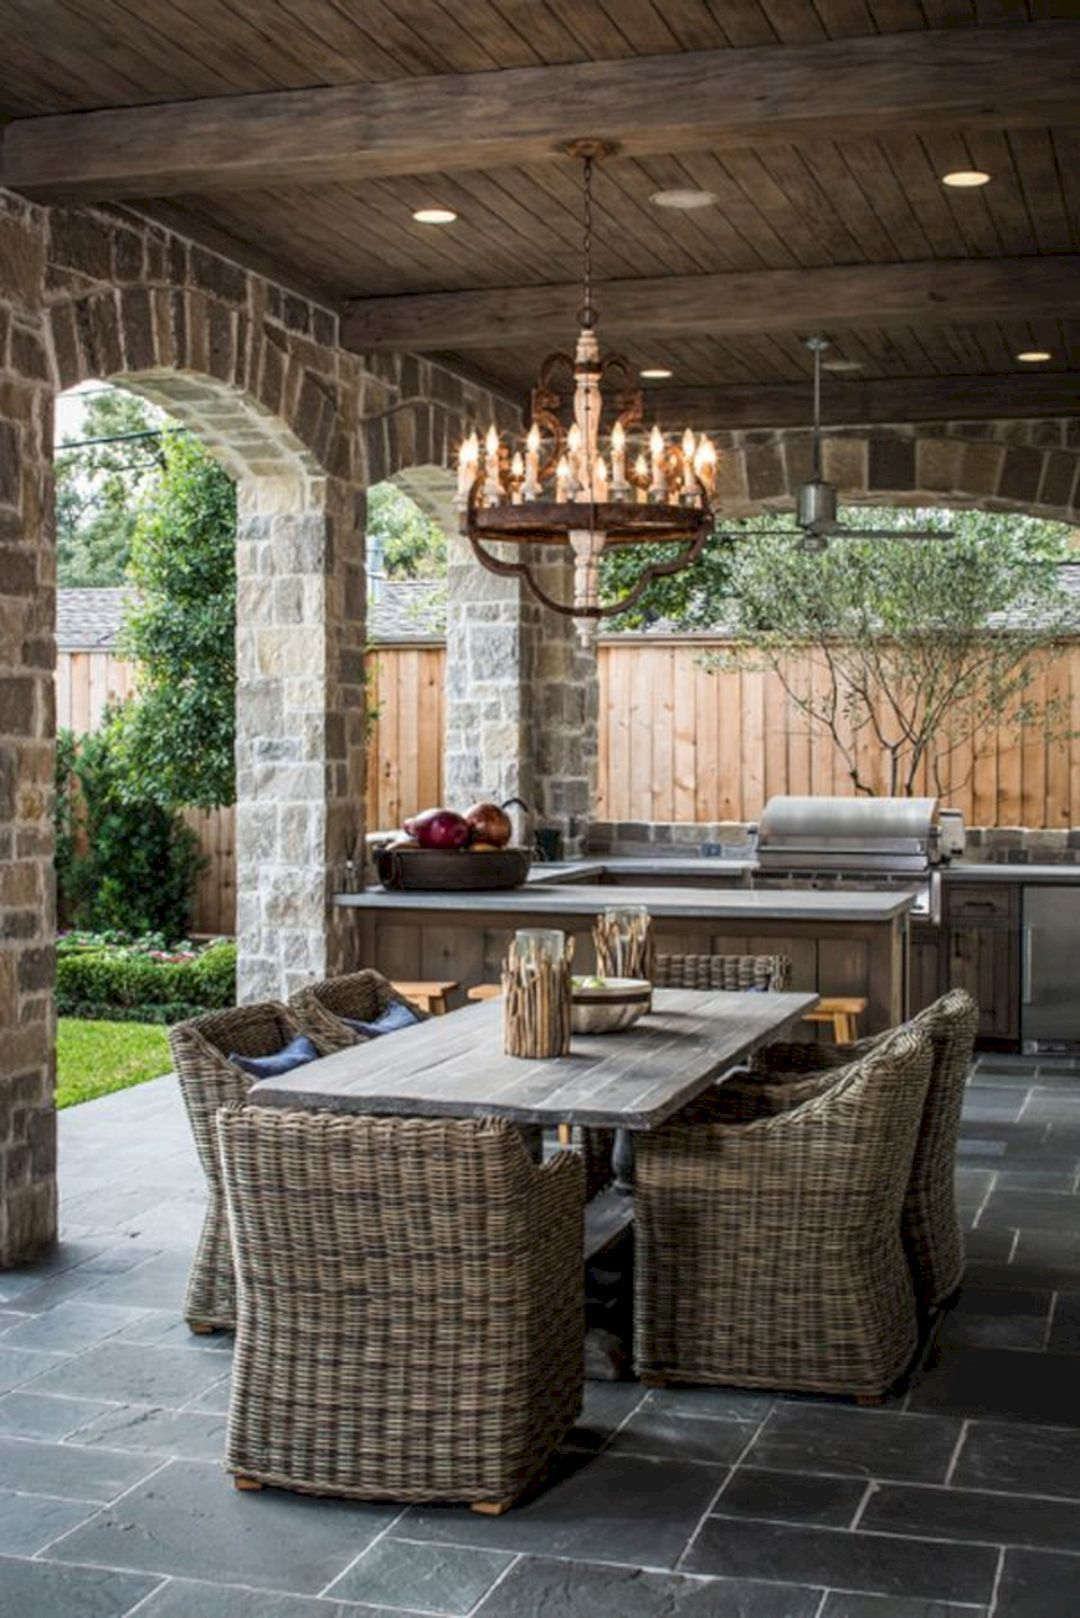 Best Ideas French Country Style Home Designs 26  French Country Enchanting Outdoor Kitchens And Patios Designs 2018